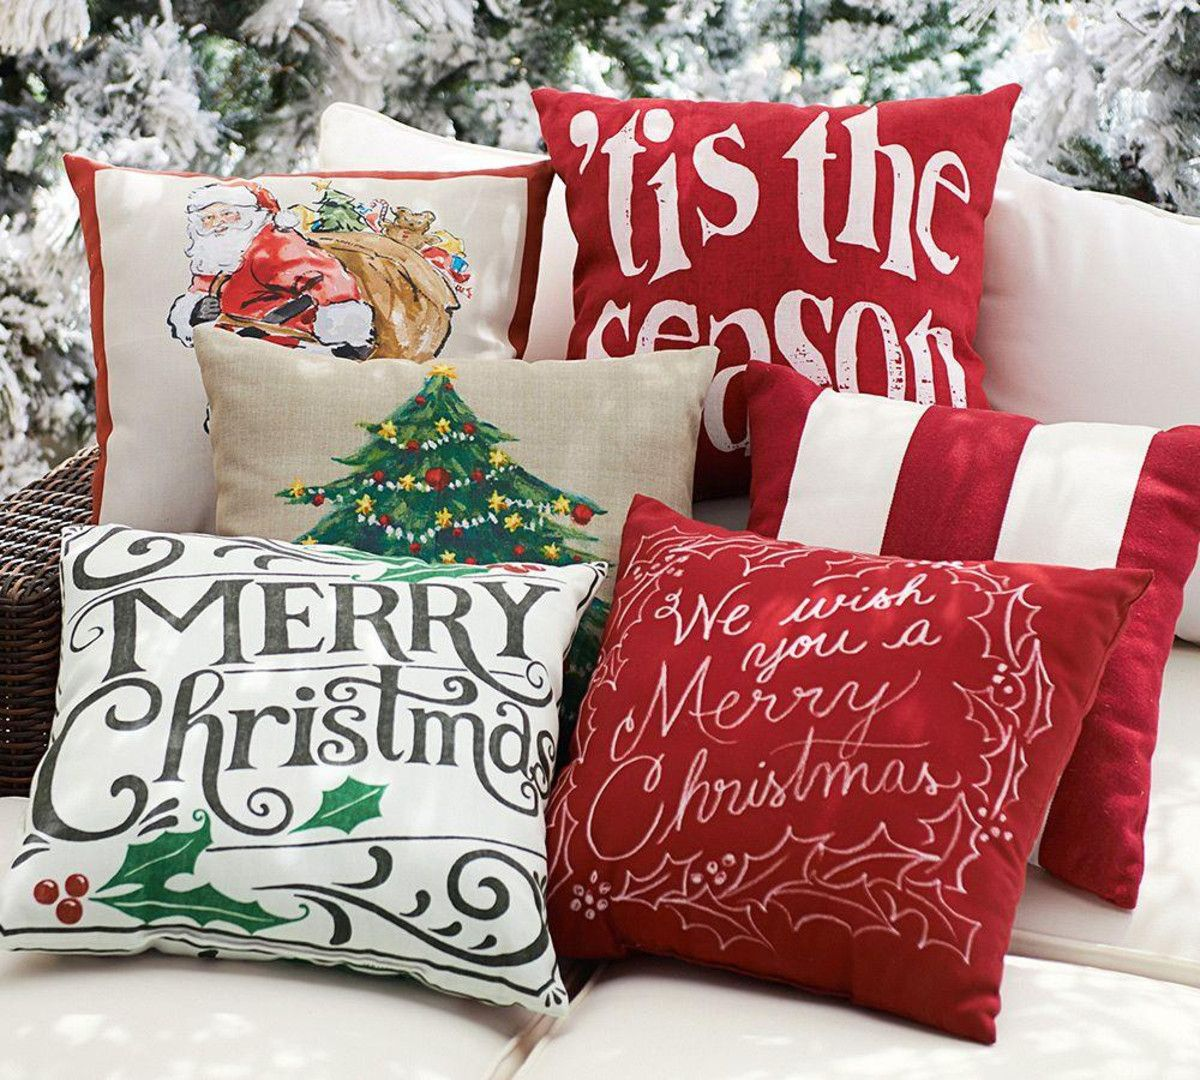 Merry Christmas Sentiment Outdoor Cushion Cover | Christmas ...